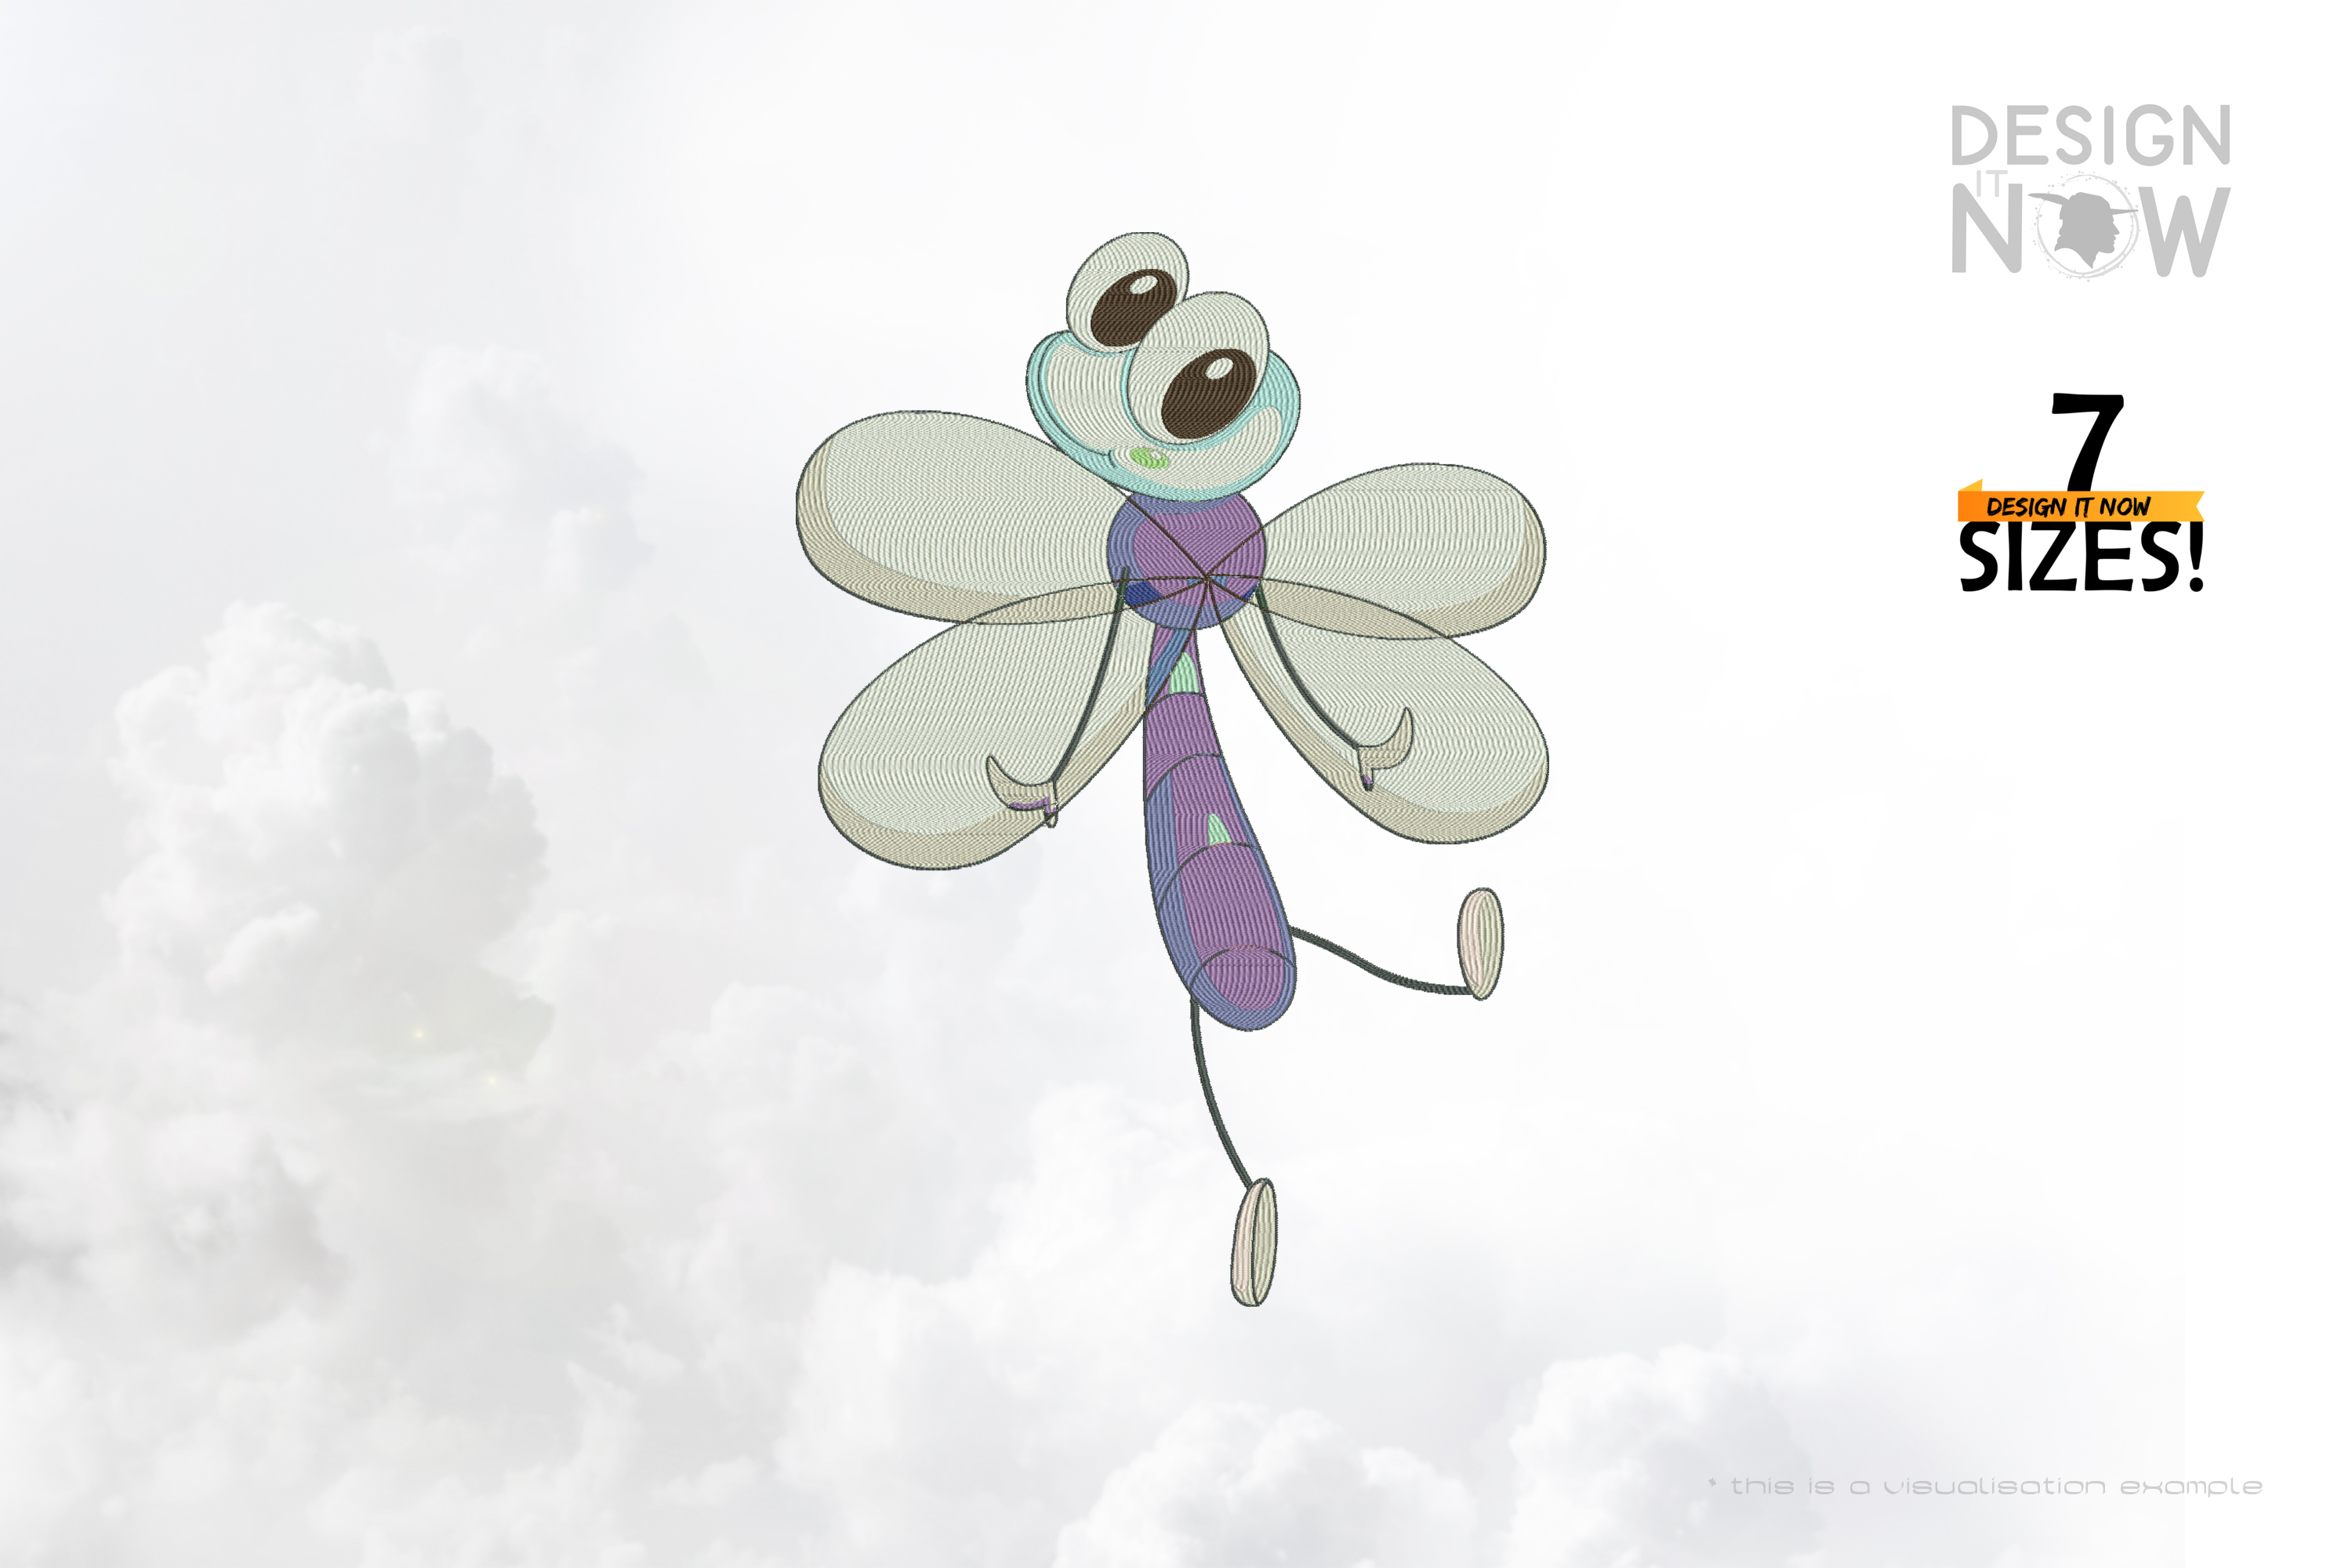 Cartoon Insect VII